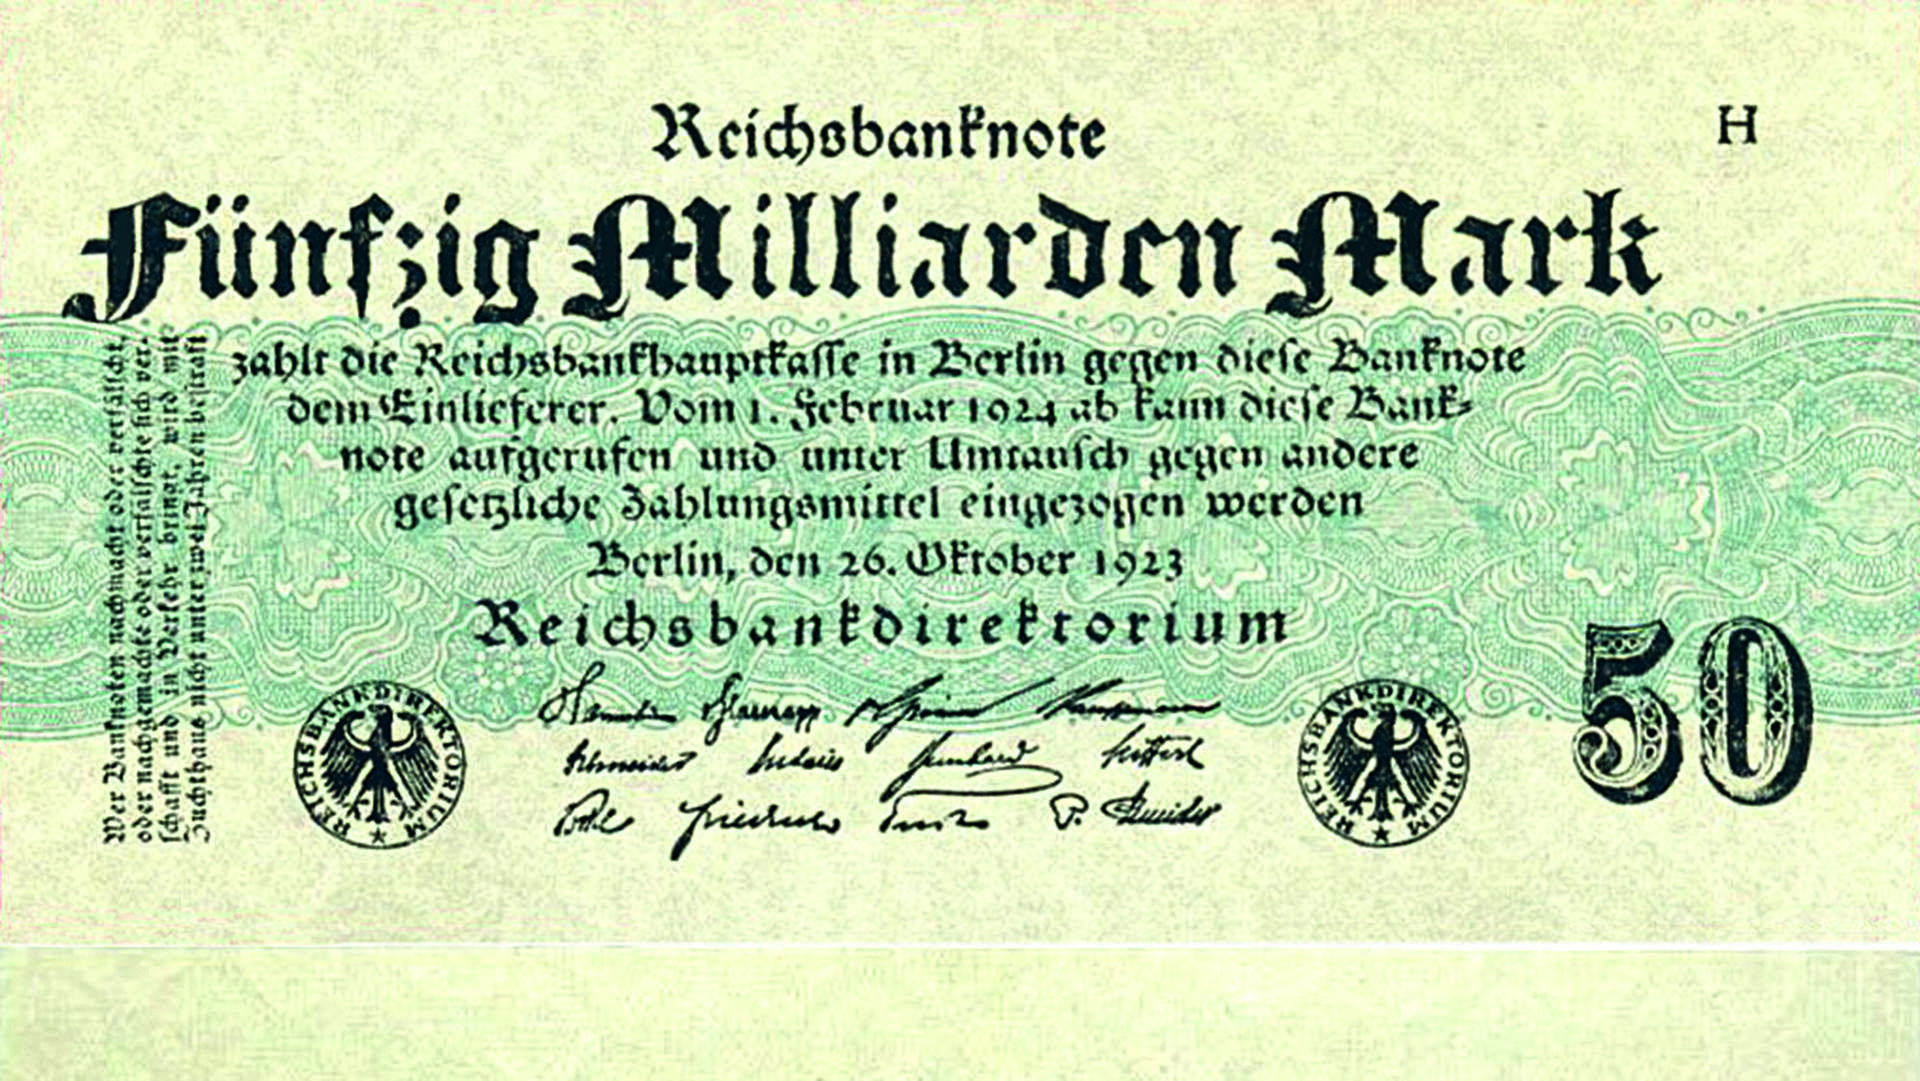 Foto: Gemeinfrei/Deutsche Reichsbank, [50 Milliarden Mark 1923-10-26]( https://commons.wikimedia.org/wiki/File:50_Milliarden_Mark_1923-10-26.jpg), via Wikimedia Commons